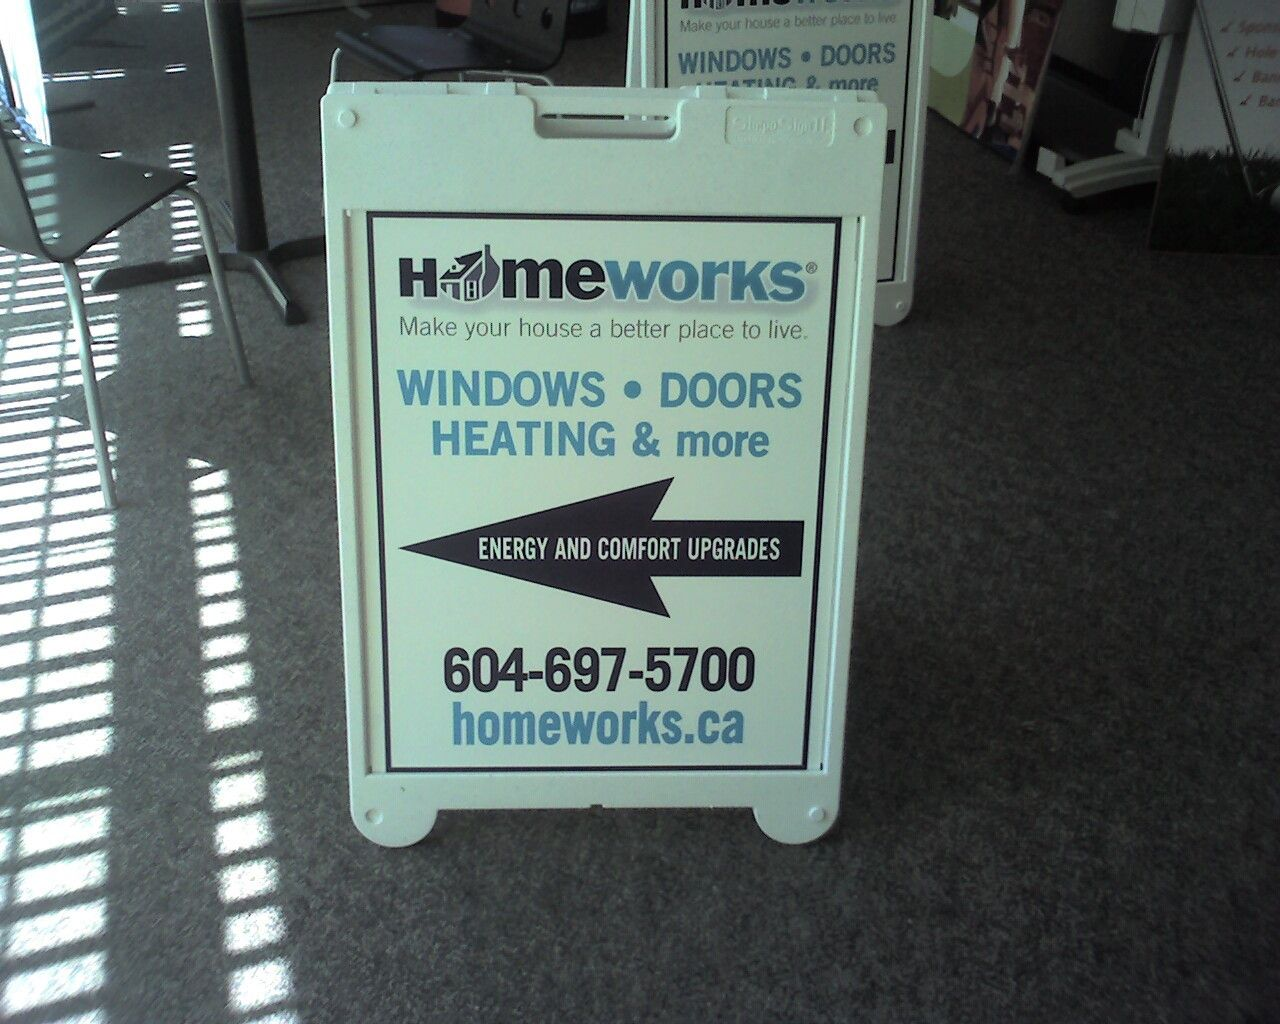 Classic sandwich board for HomeWorks Windows and Doors created by ...